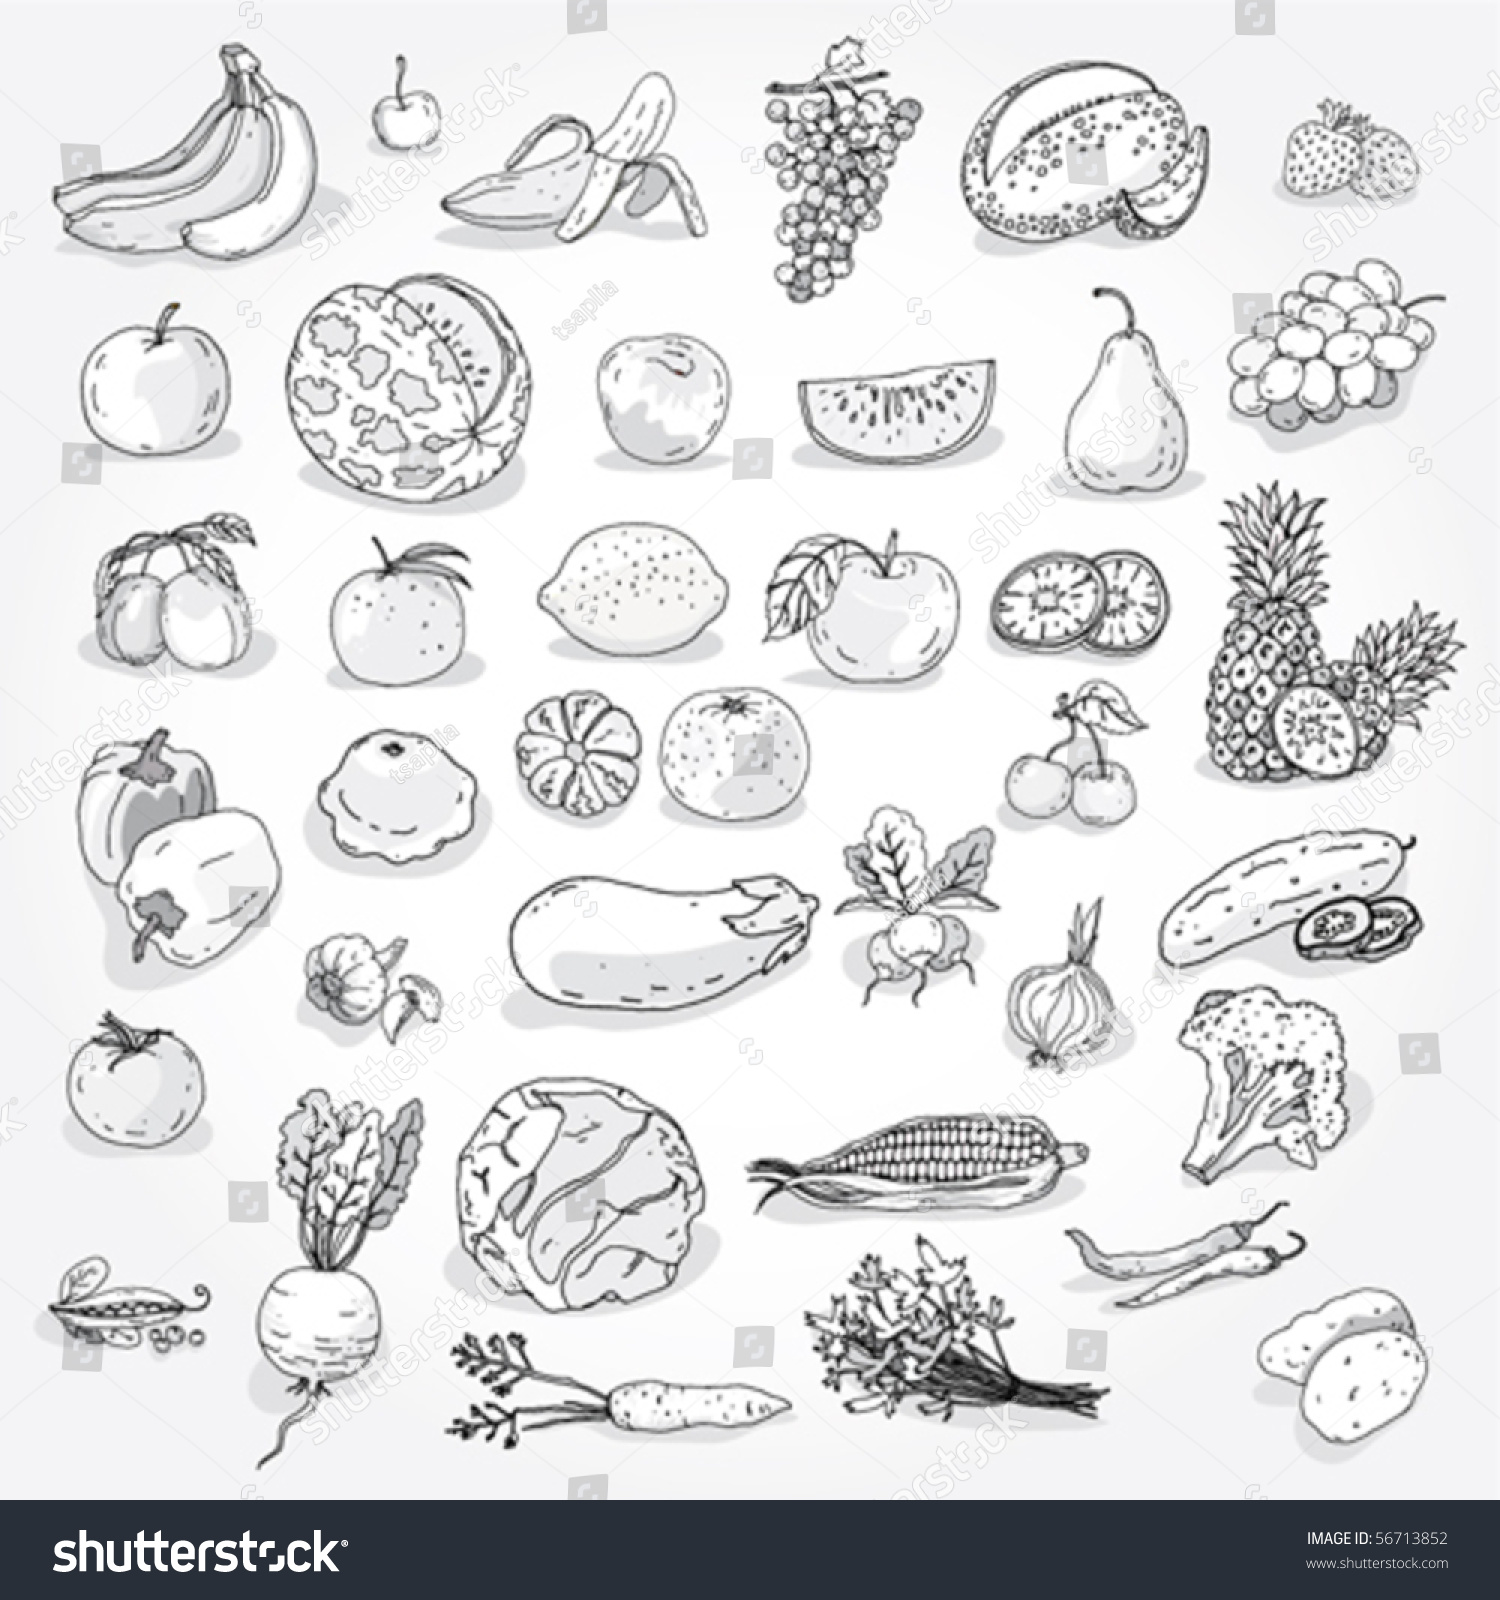 hand drawn fruits vegetables outline stock vector 56713852